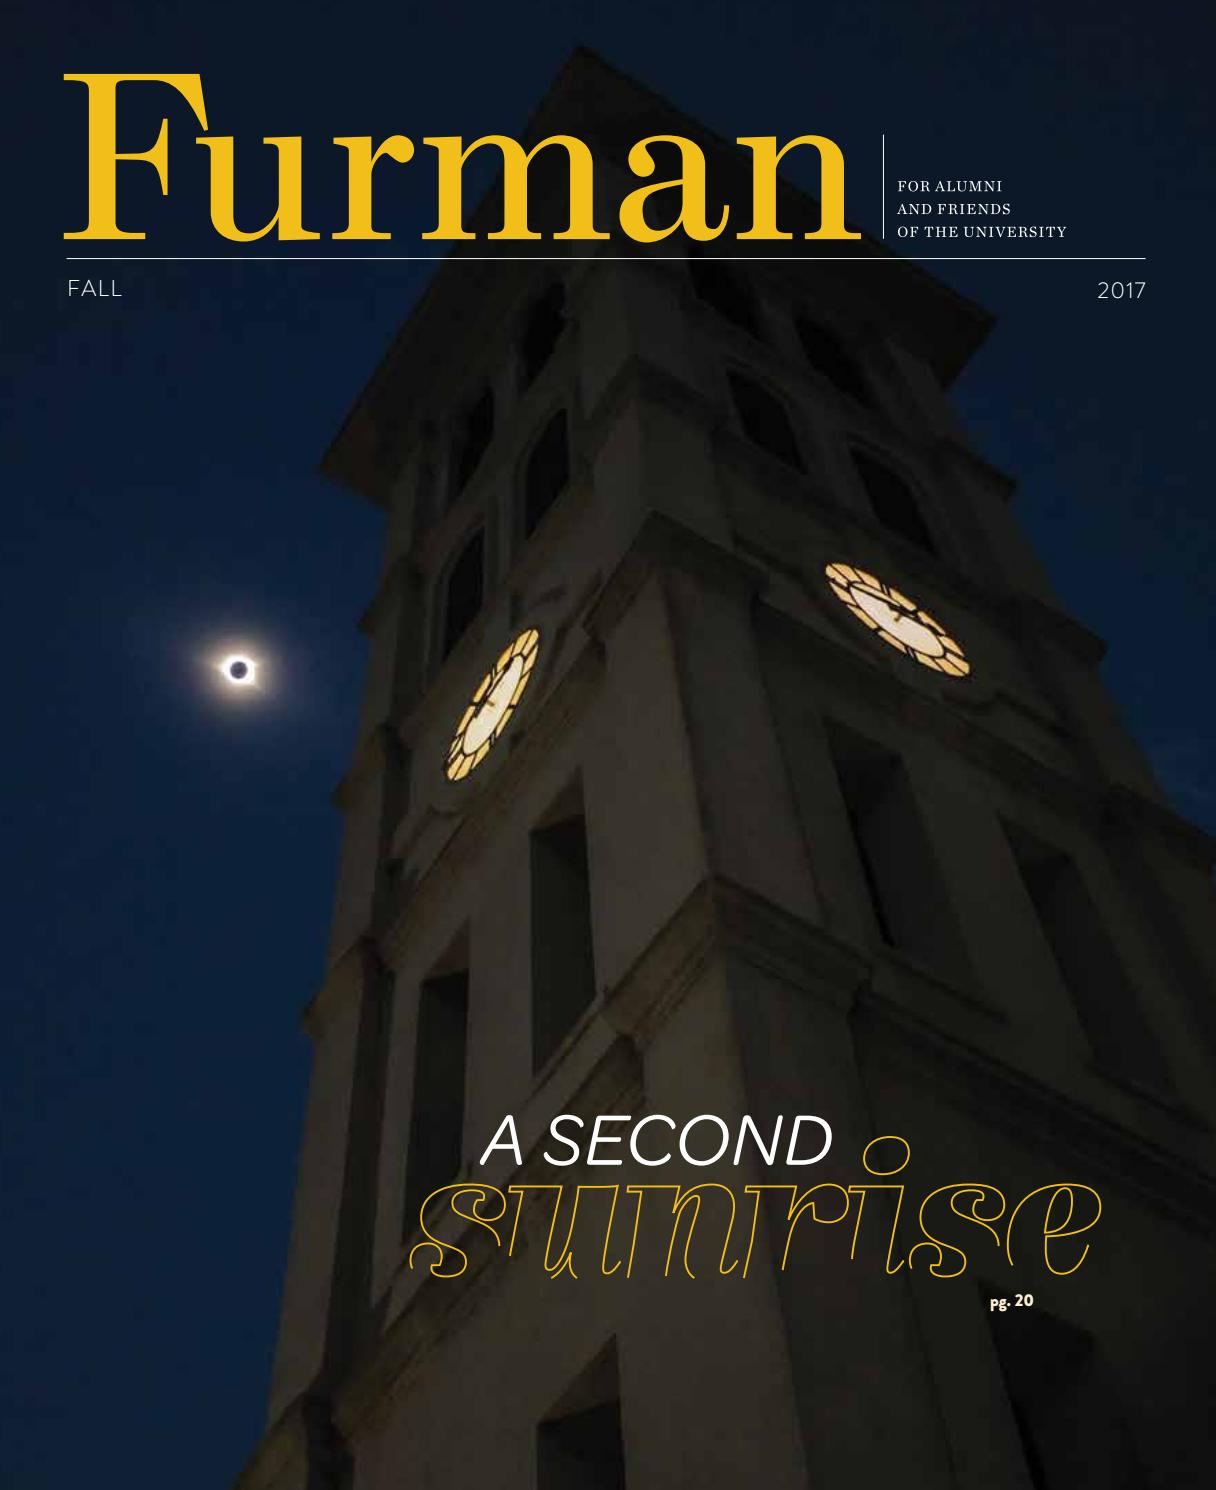 Furman Magazine Fall 2017 By University Issuu Hobby Diy Projects And Circuits Delabs